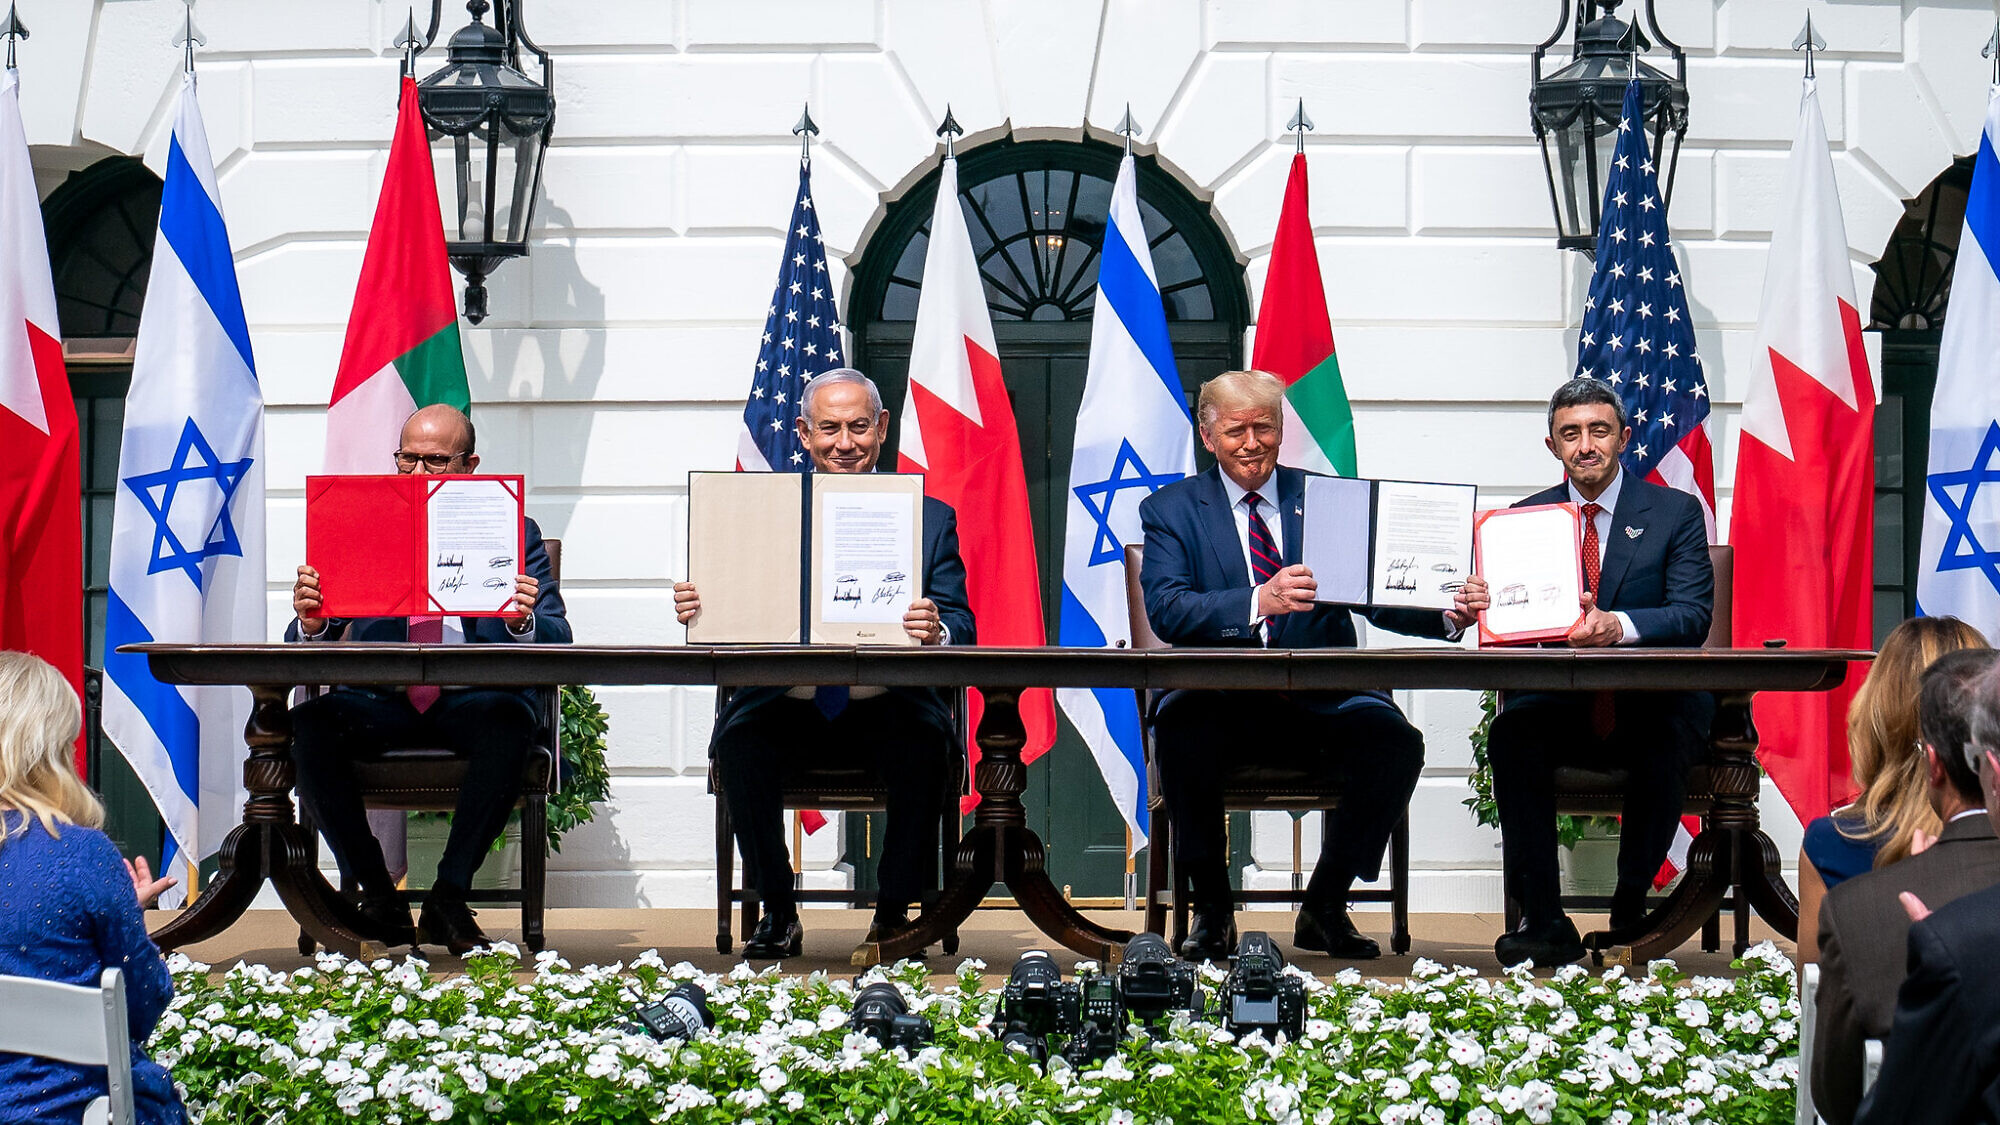 U.S. President Donald Trump, Bahraini Foreign Minister Abdullatif bin Rashid Al-Zayani, Israeli Prime Minister Benjamin Netanyahu and UAE Foreign Minister Abdullah bin Zayed Al Nahyani sign the Abraham Accords on the South Lawn of the White House, Sept. 15, 2020. Credit: White House/Tia Dufour.